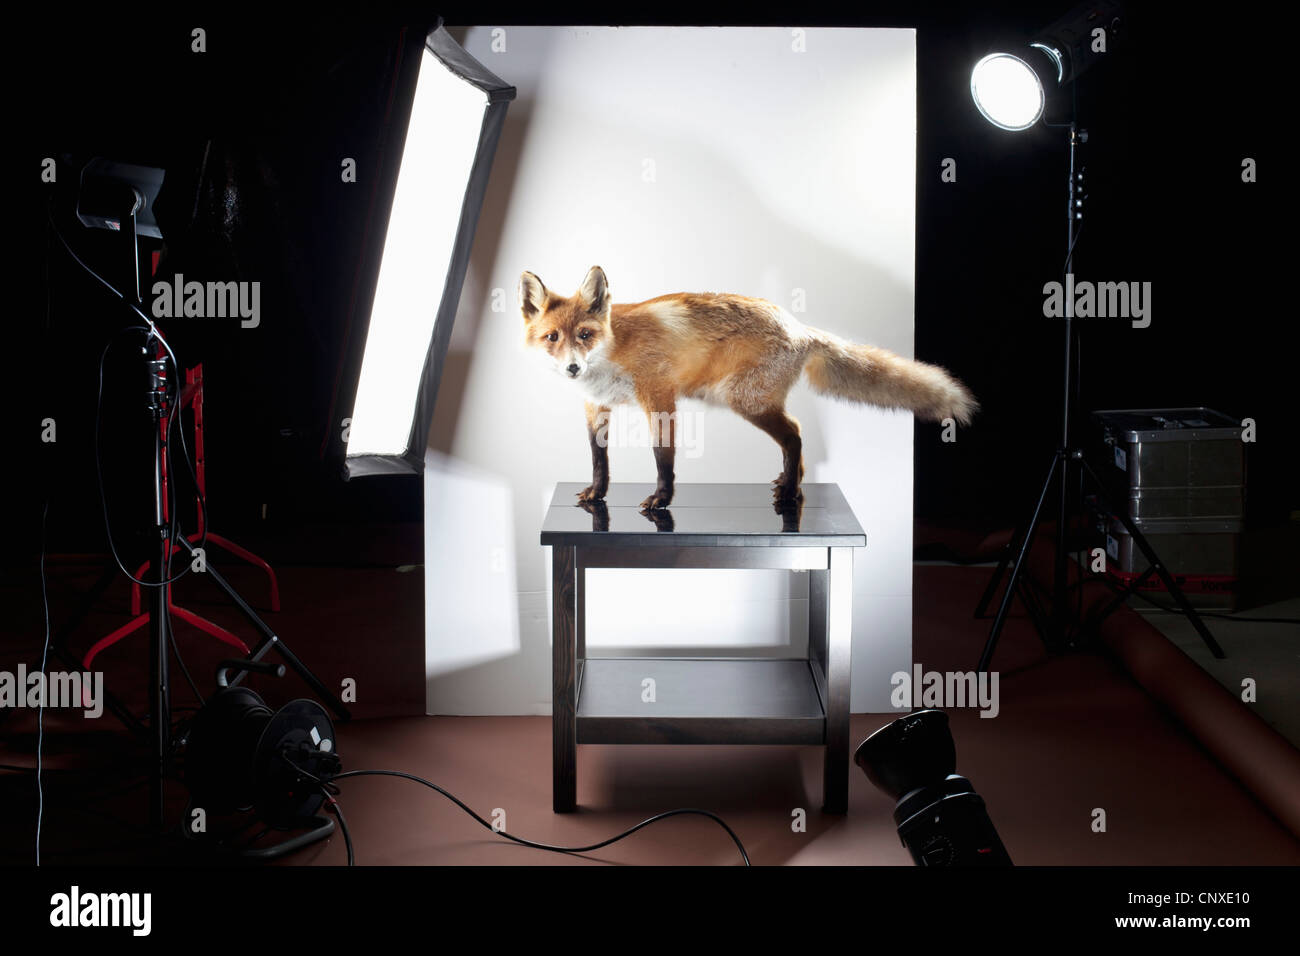 A behind the scenes look at a photo shoot of a stuffed fox - Stock Image